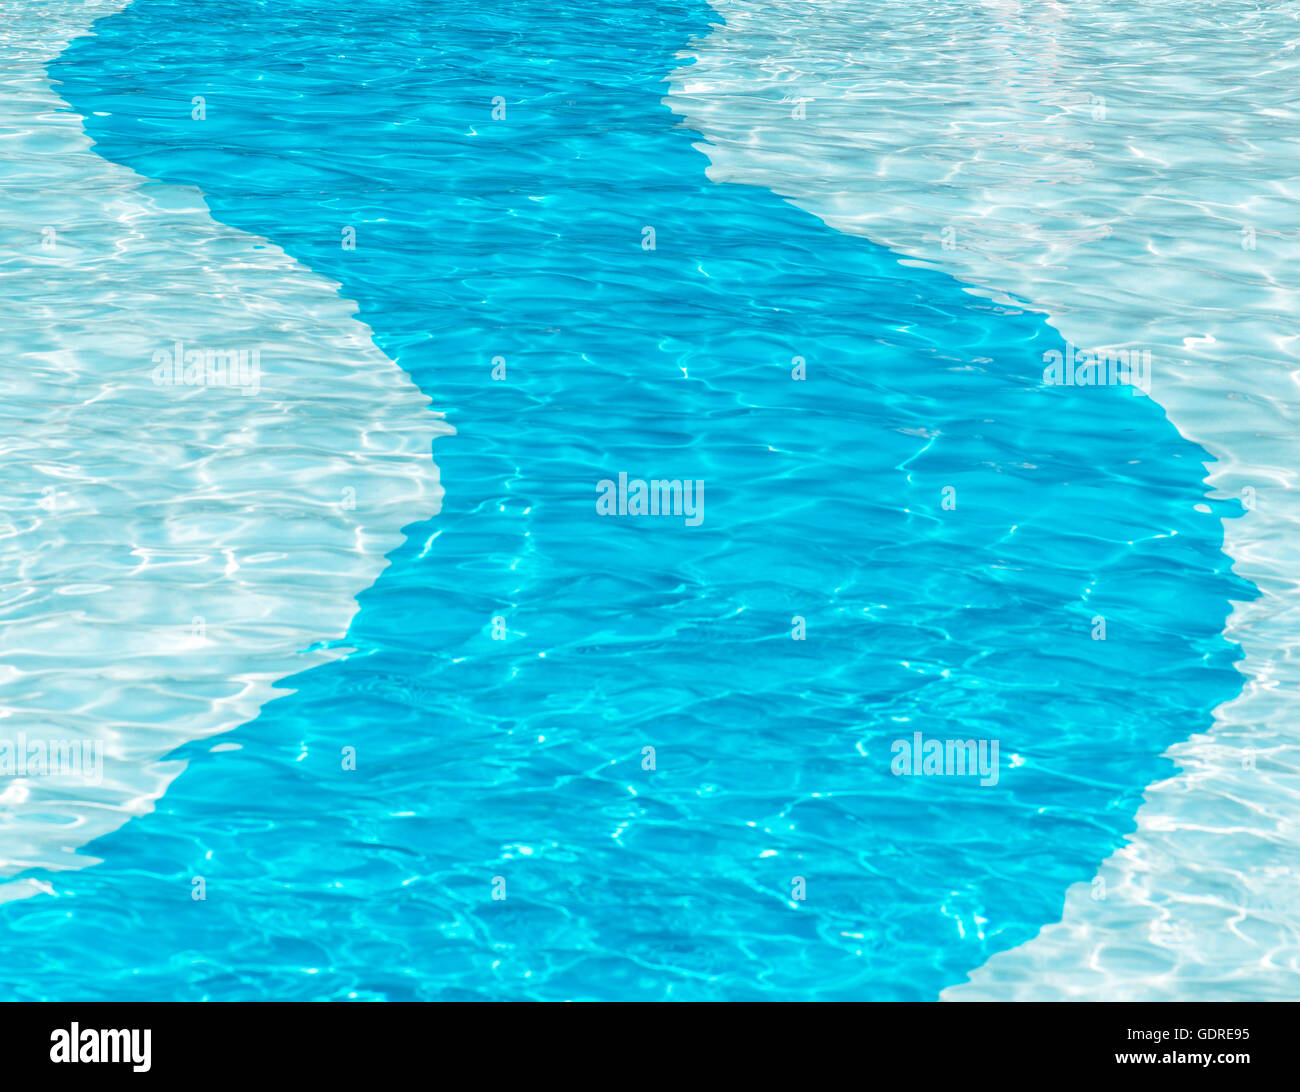 Blue deep strip going through a crystal clear swimming pool ideal for copy space and posters - Stock Image